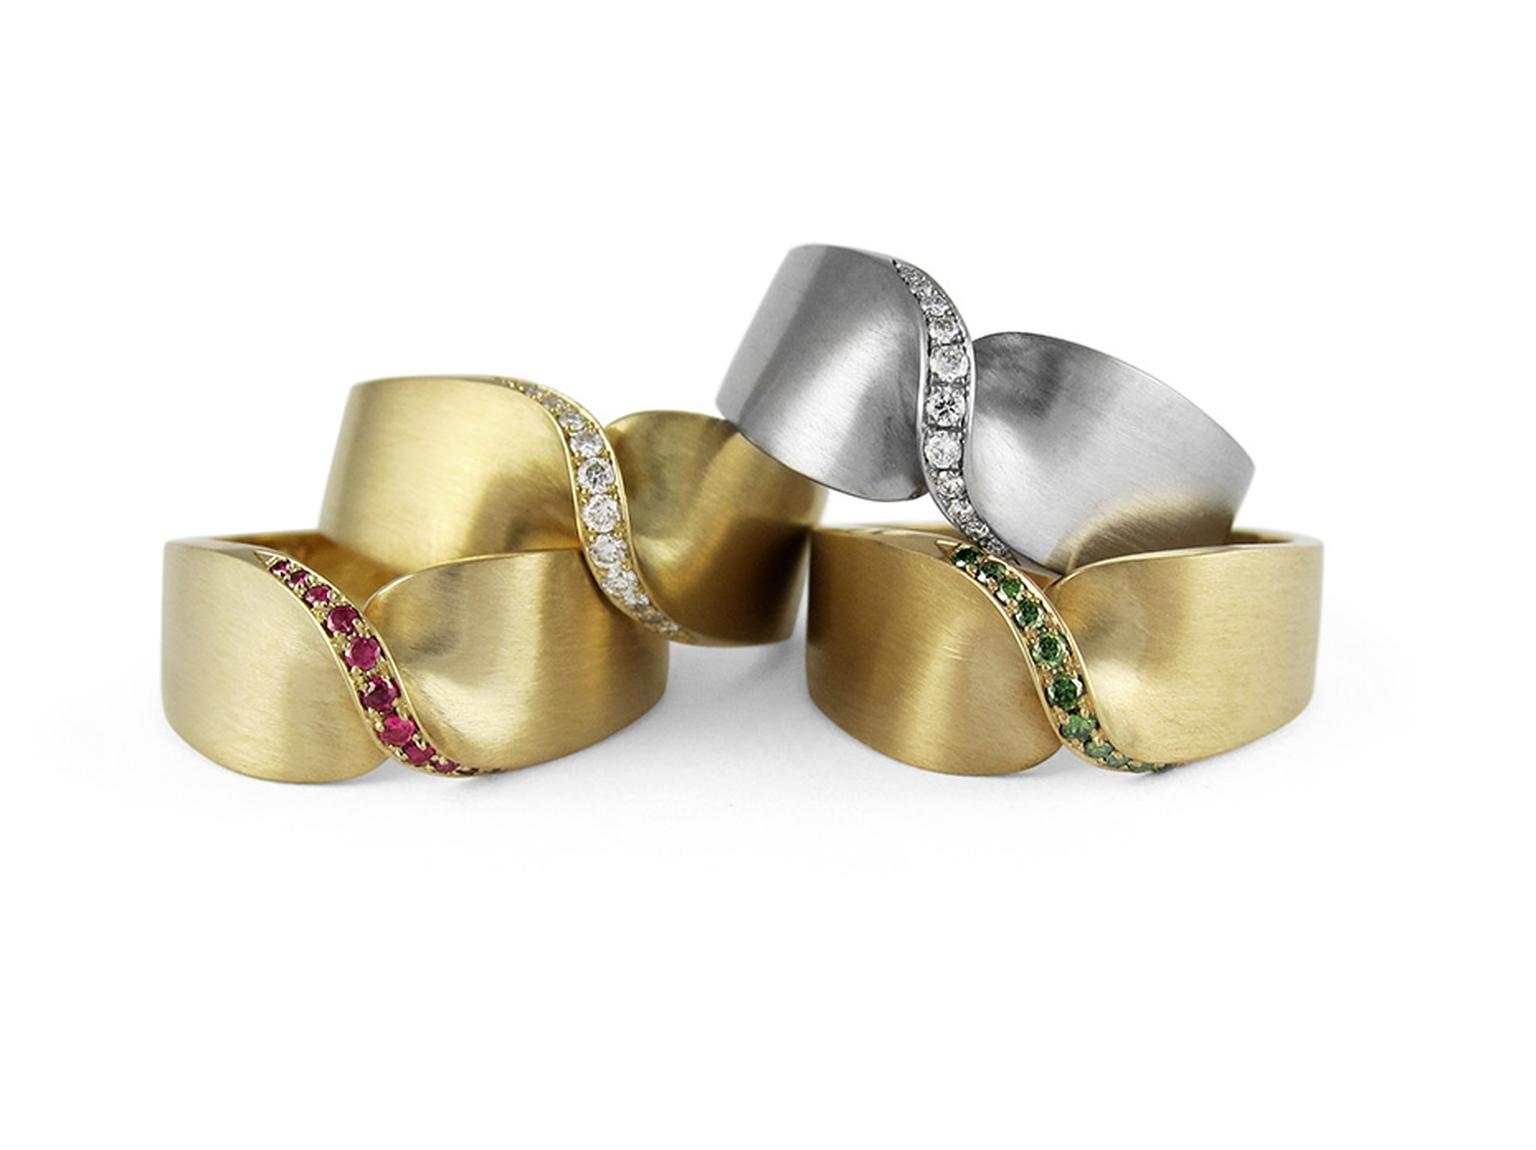 Wedding band designs from Jessica Poole in Fairtrade white and yellow gold, set with pavé diamond, rubies and emeralds.